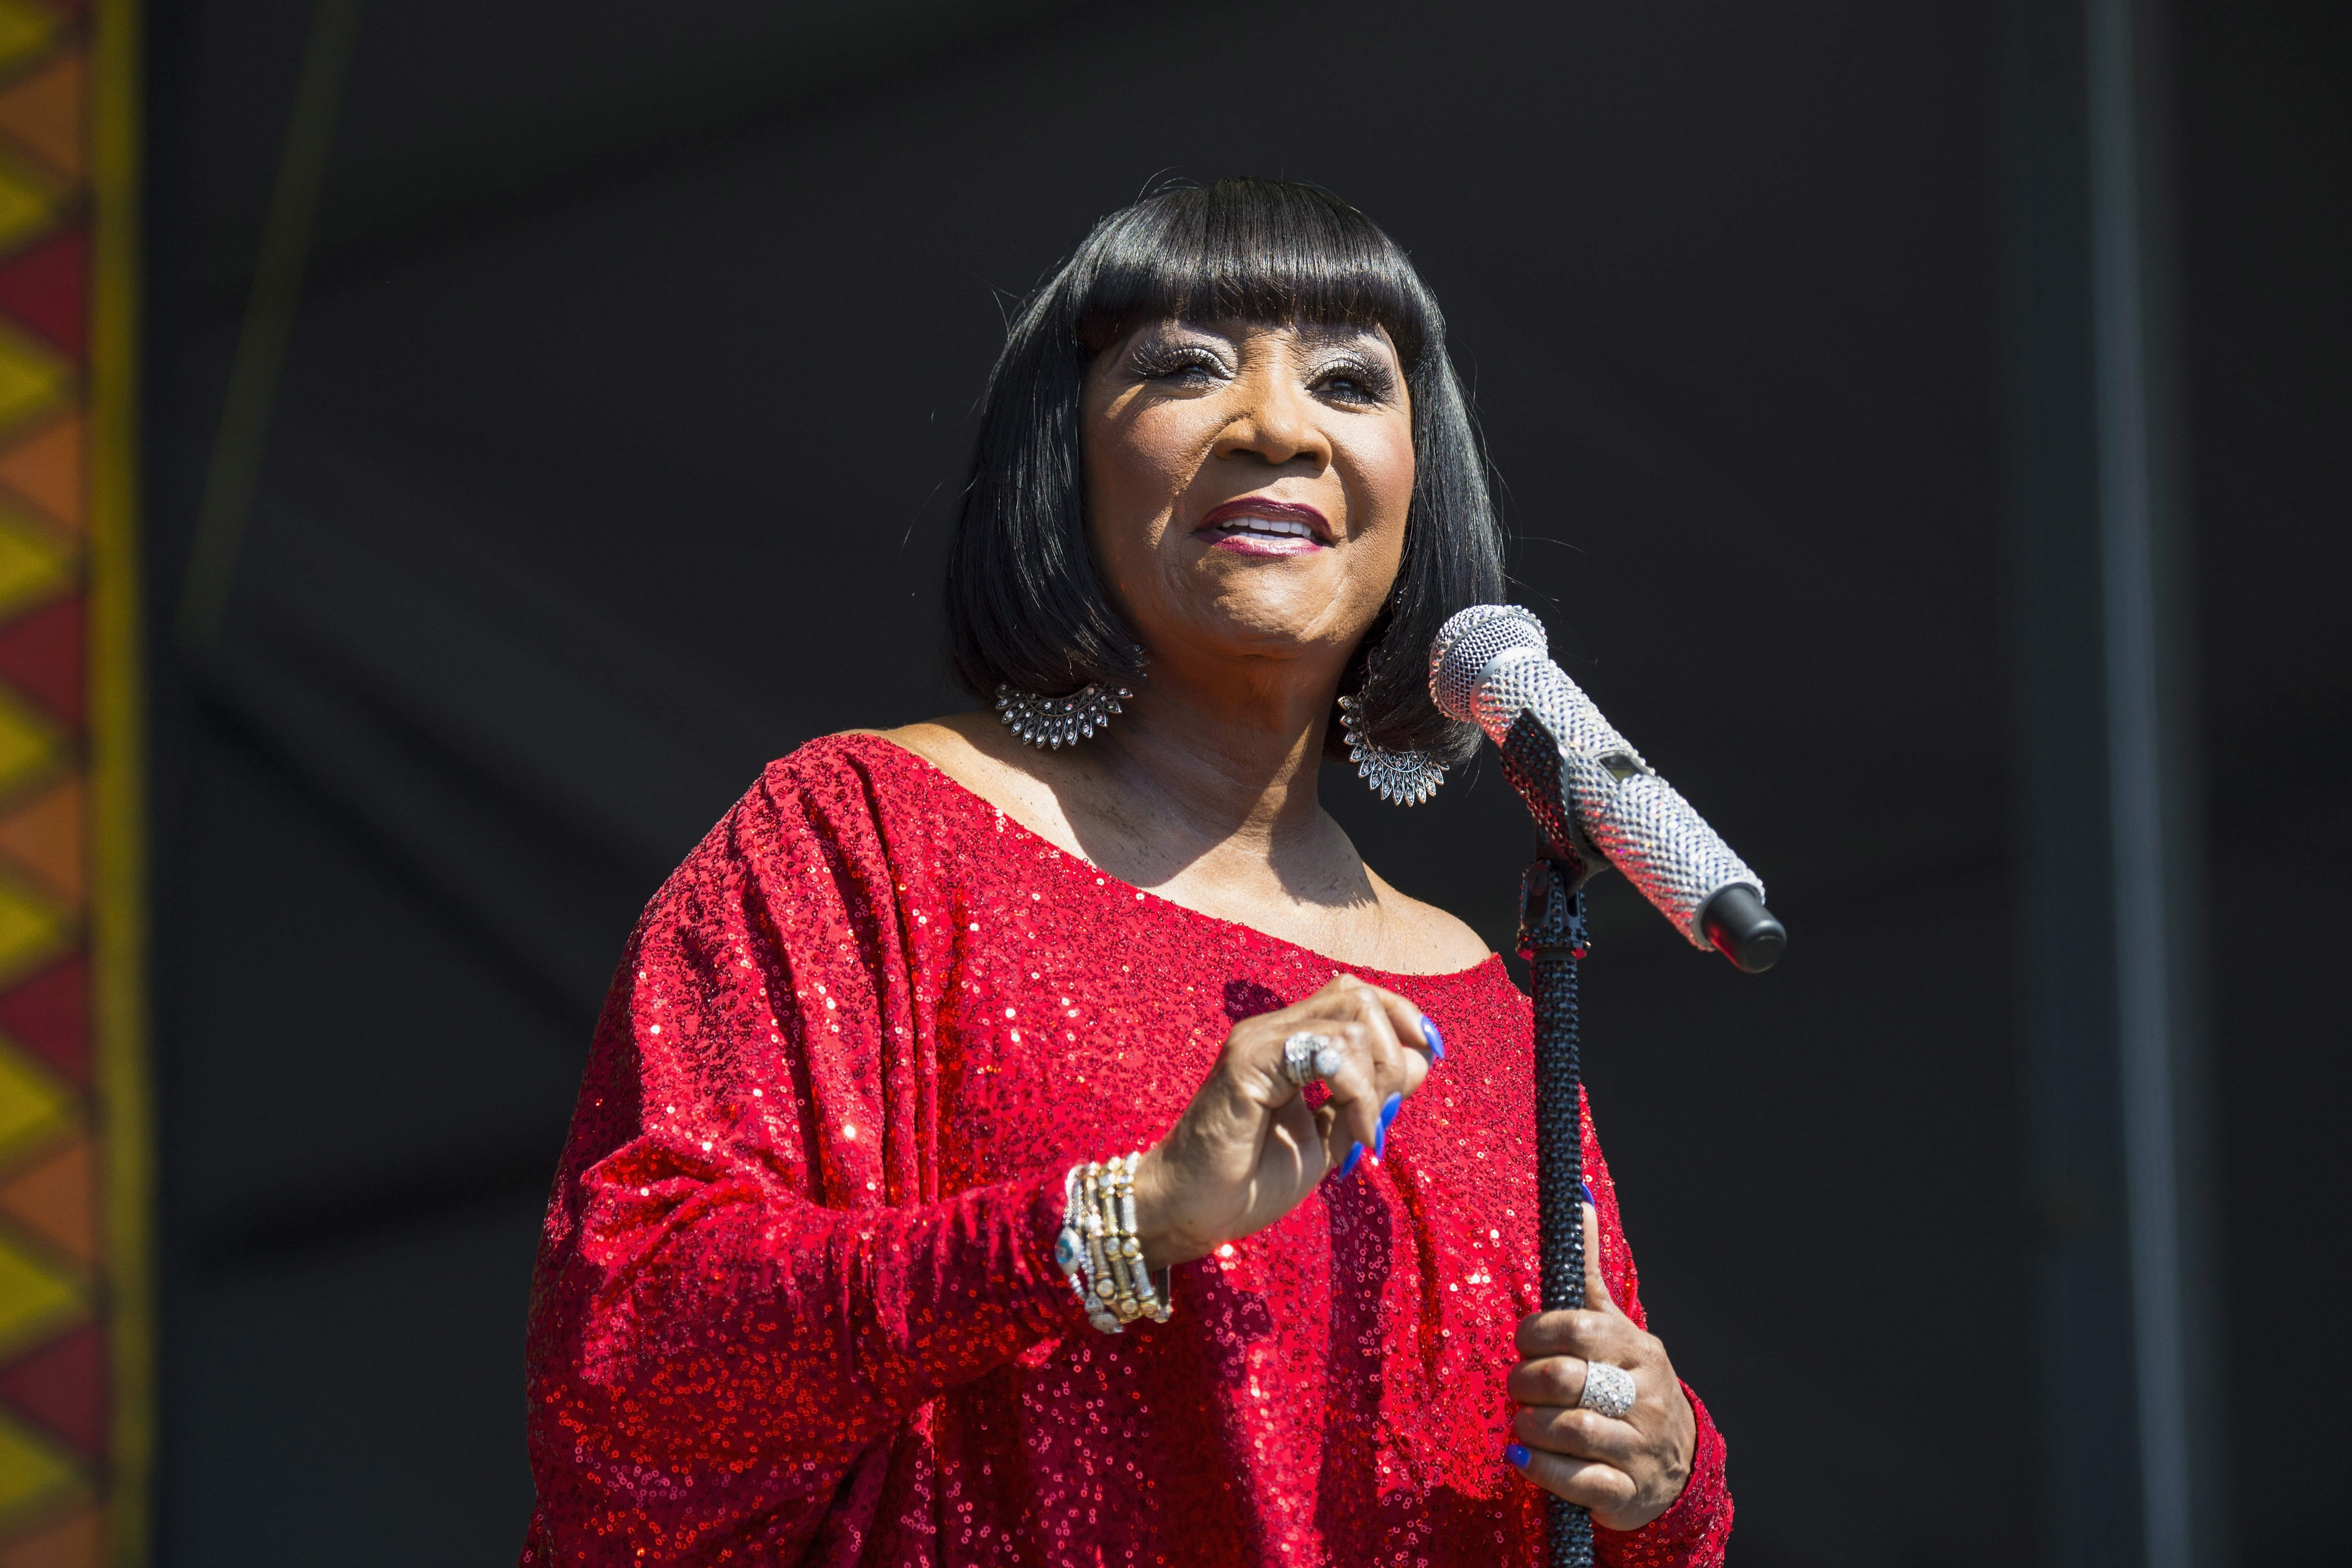 Patti LaBelle performing in New Orleans in May 2017. | Photo: Getty Images